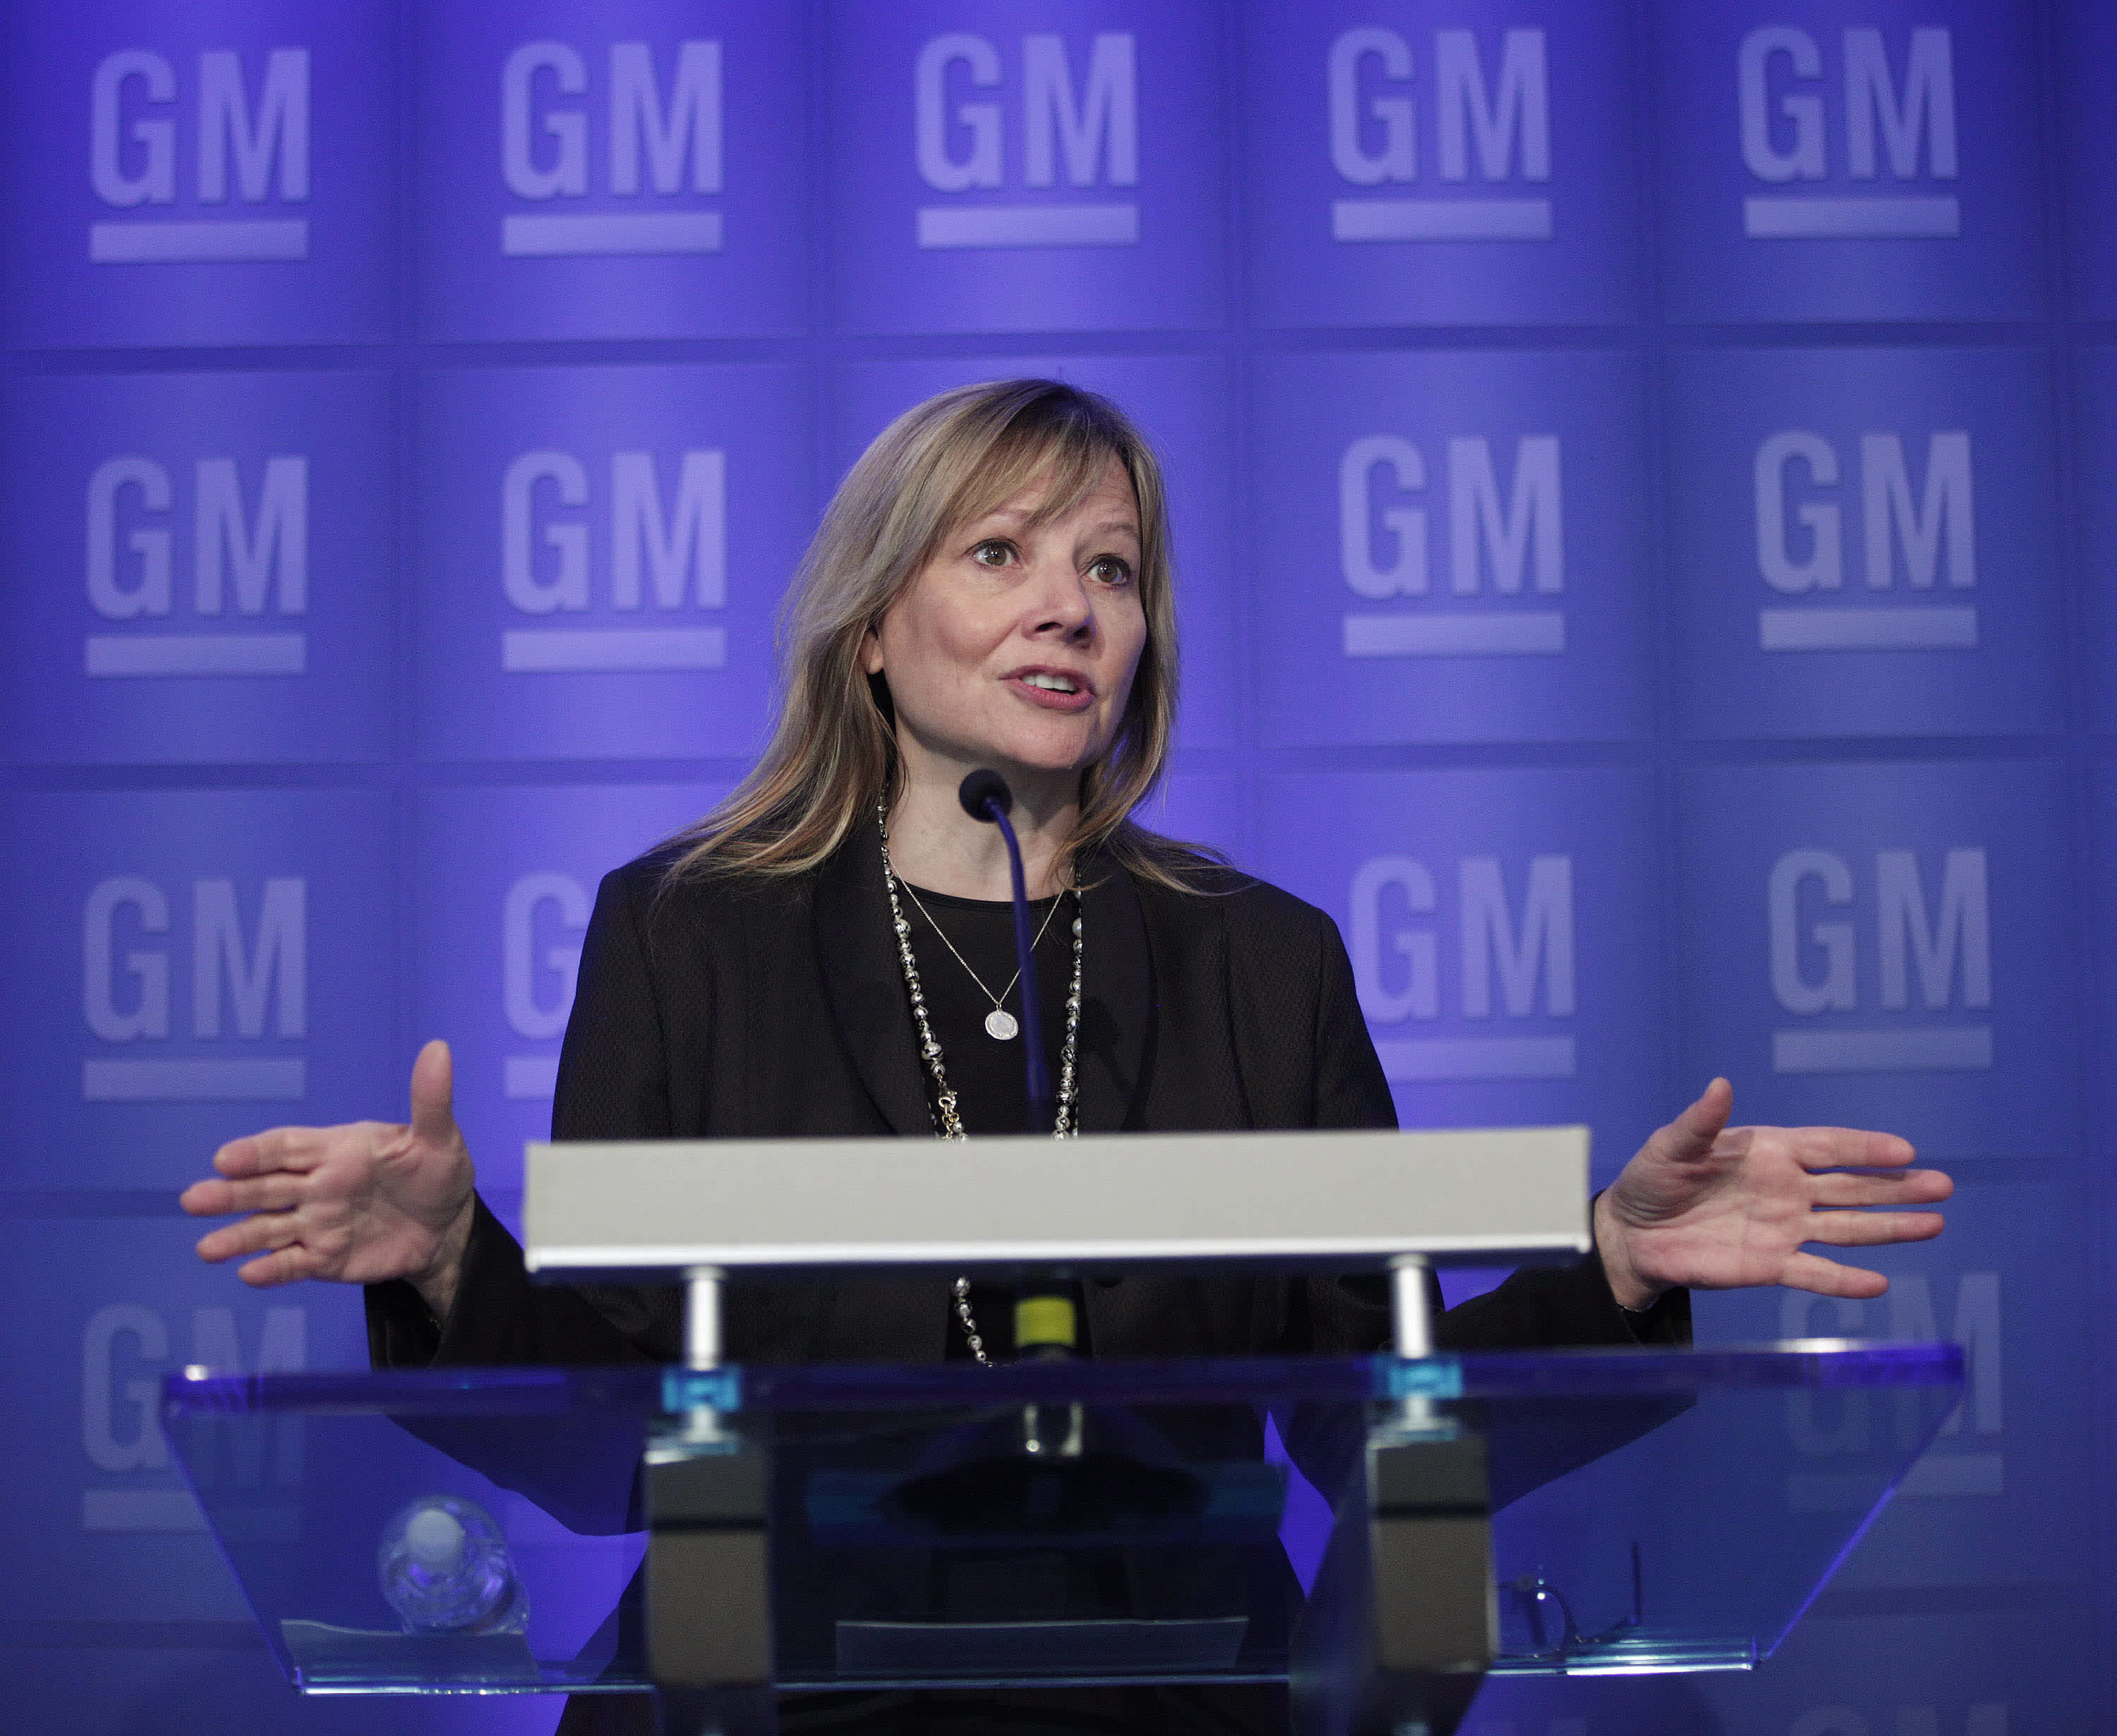 GM, LG Chem to form $2.3 billion battery cell venture for electric vehicles, creating 1,100 jobs in Ohio